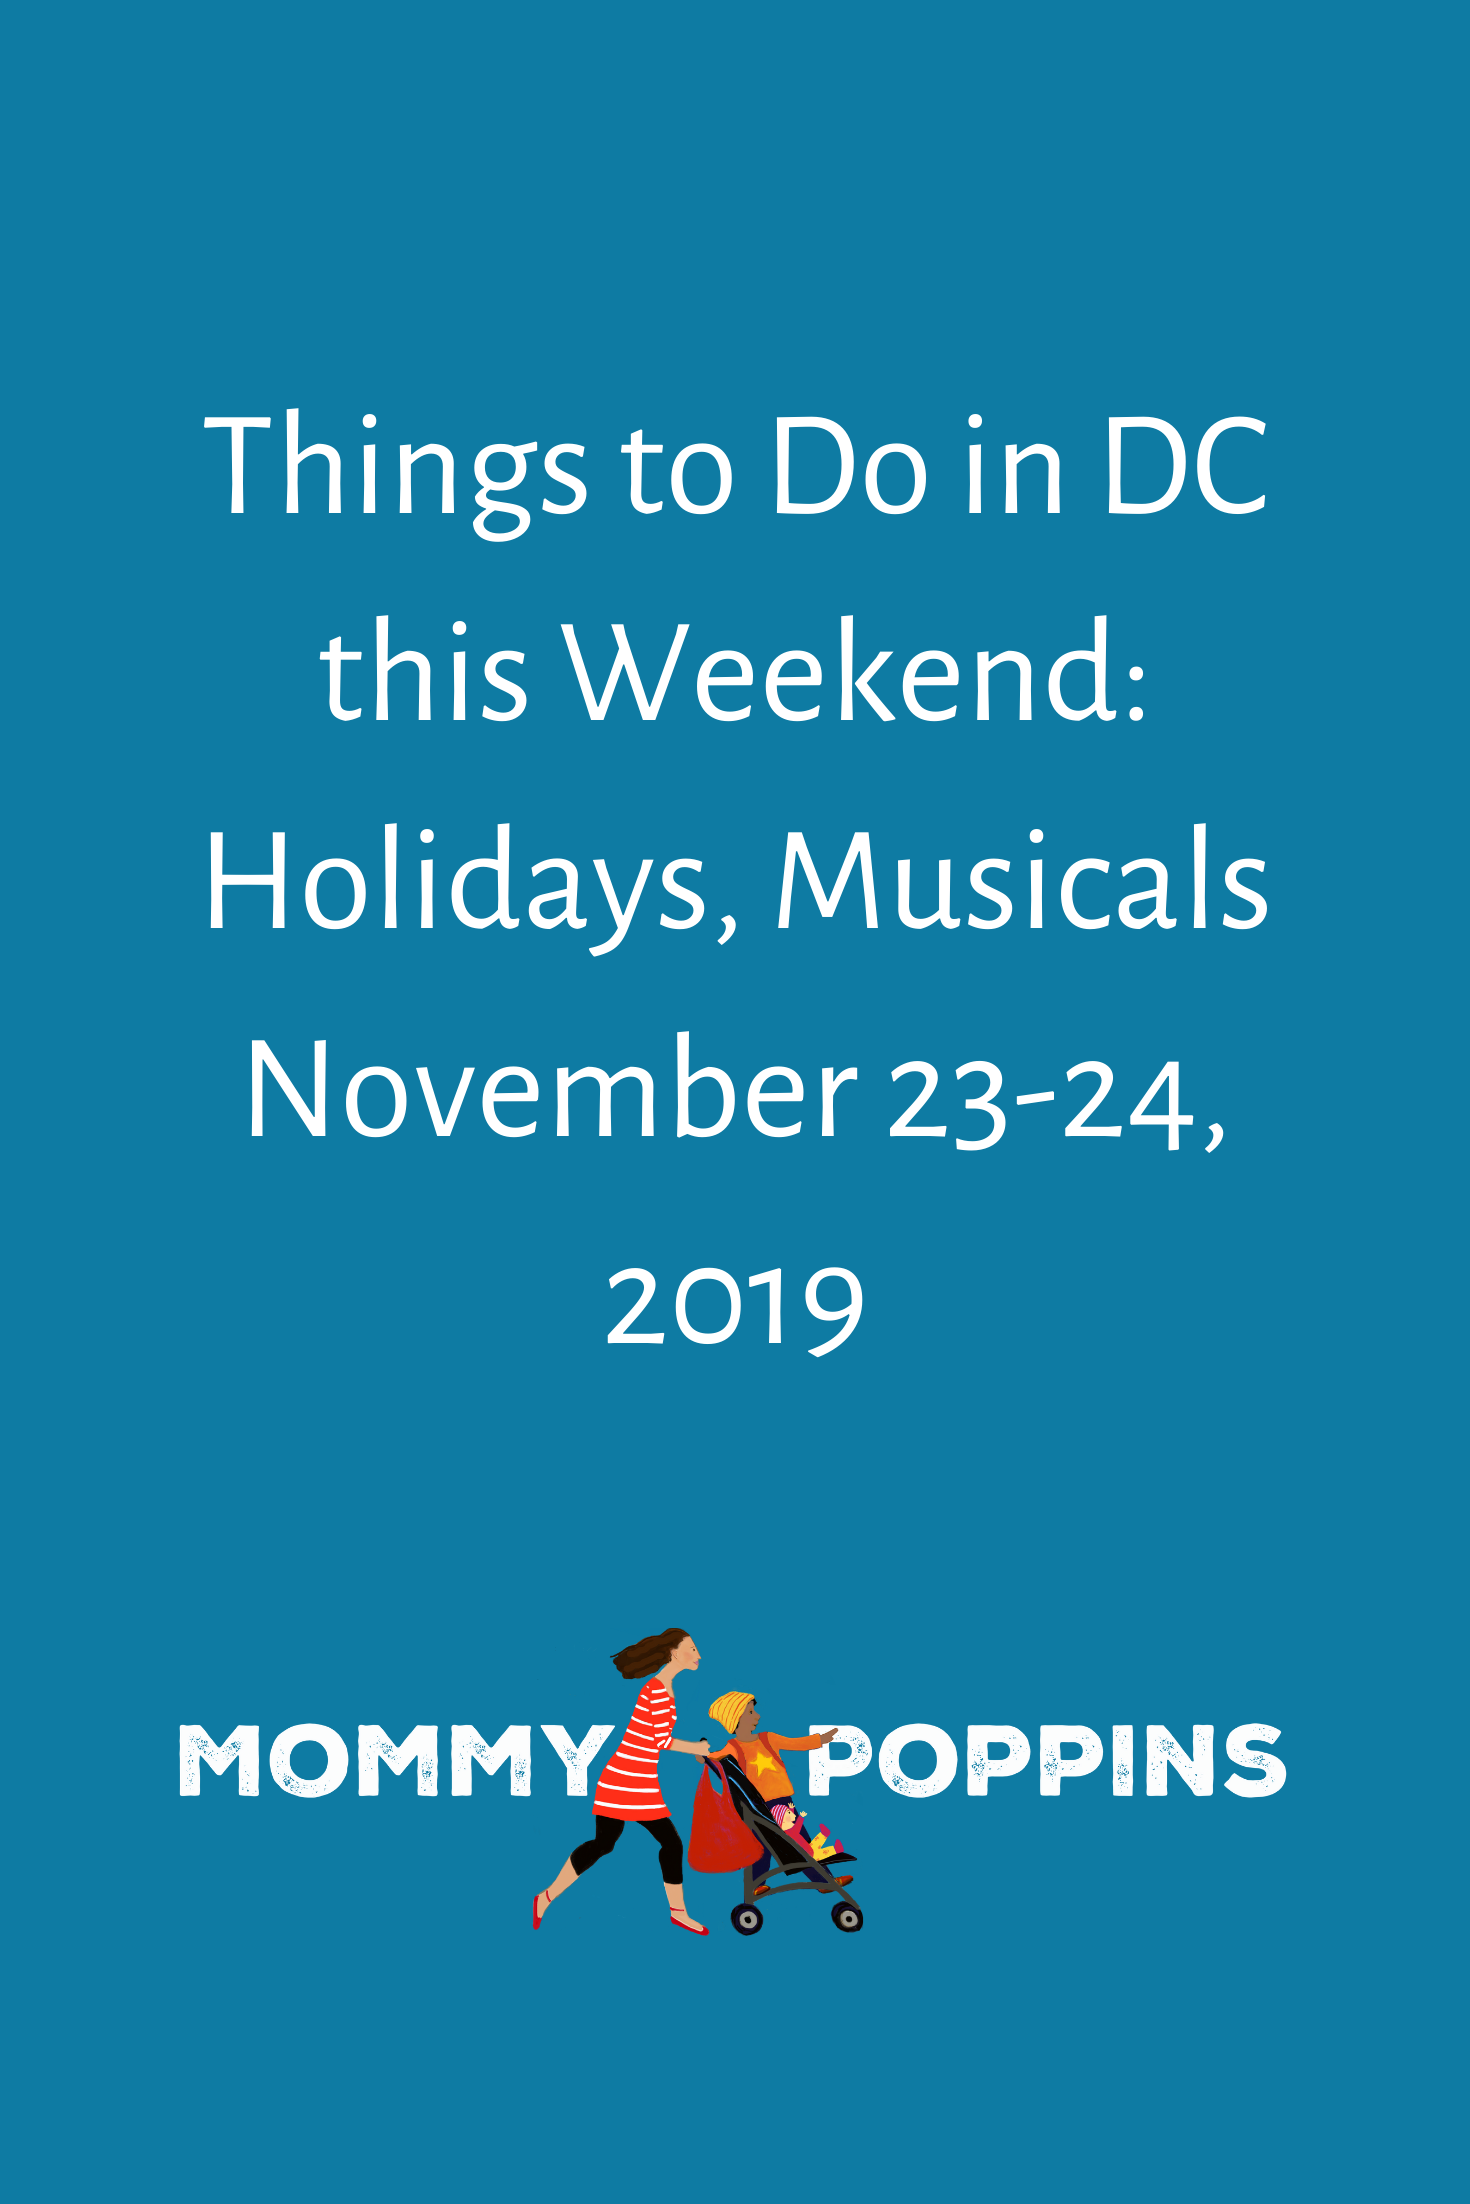 Things to Do in DC this Weekend Holidays, Musicals